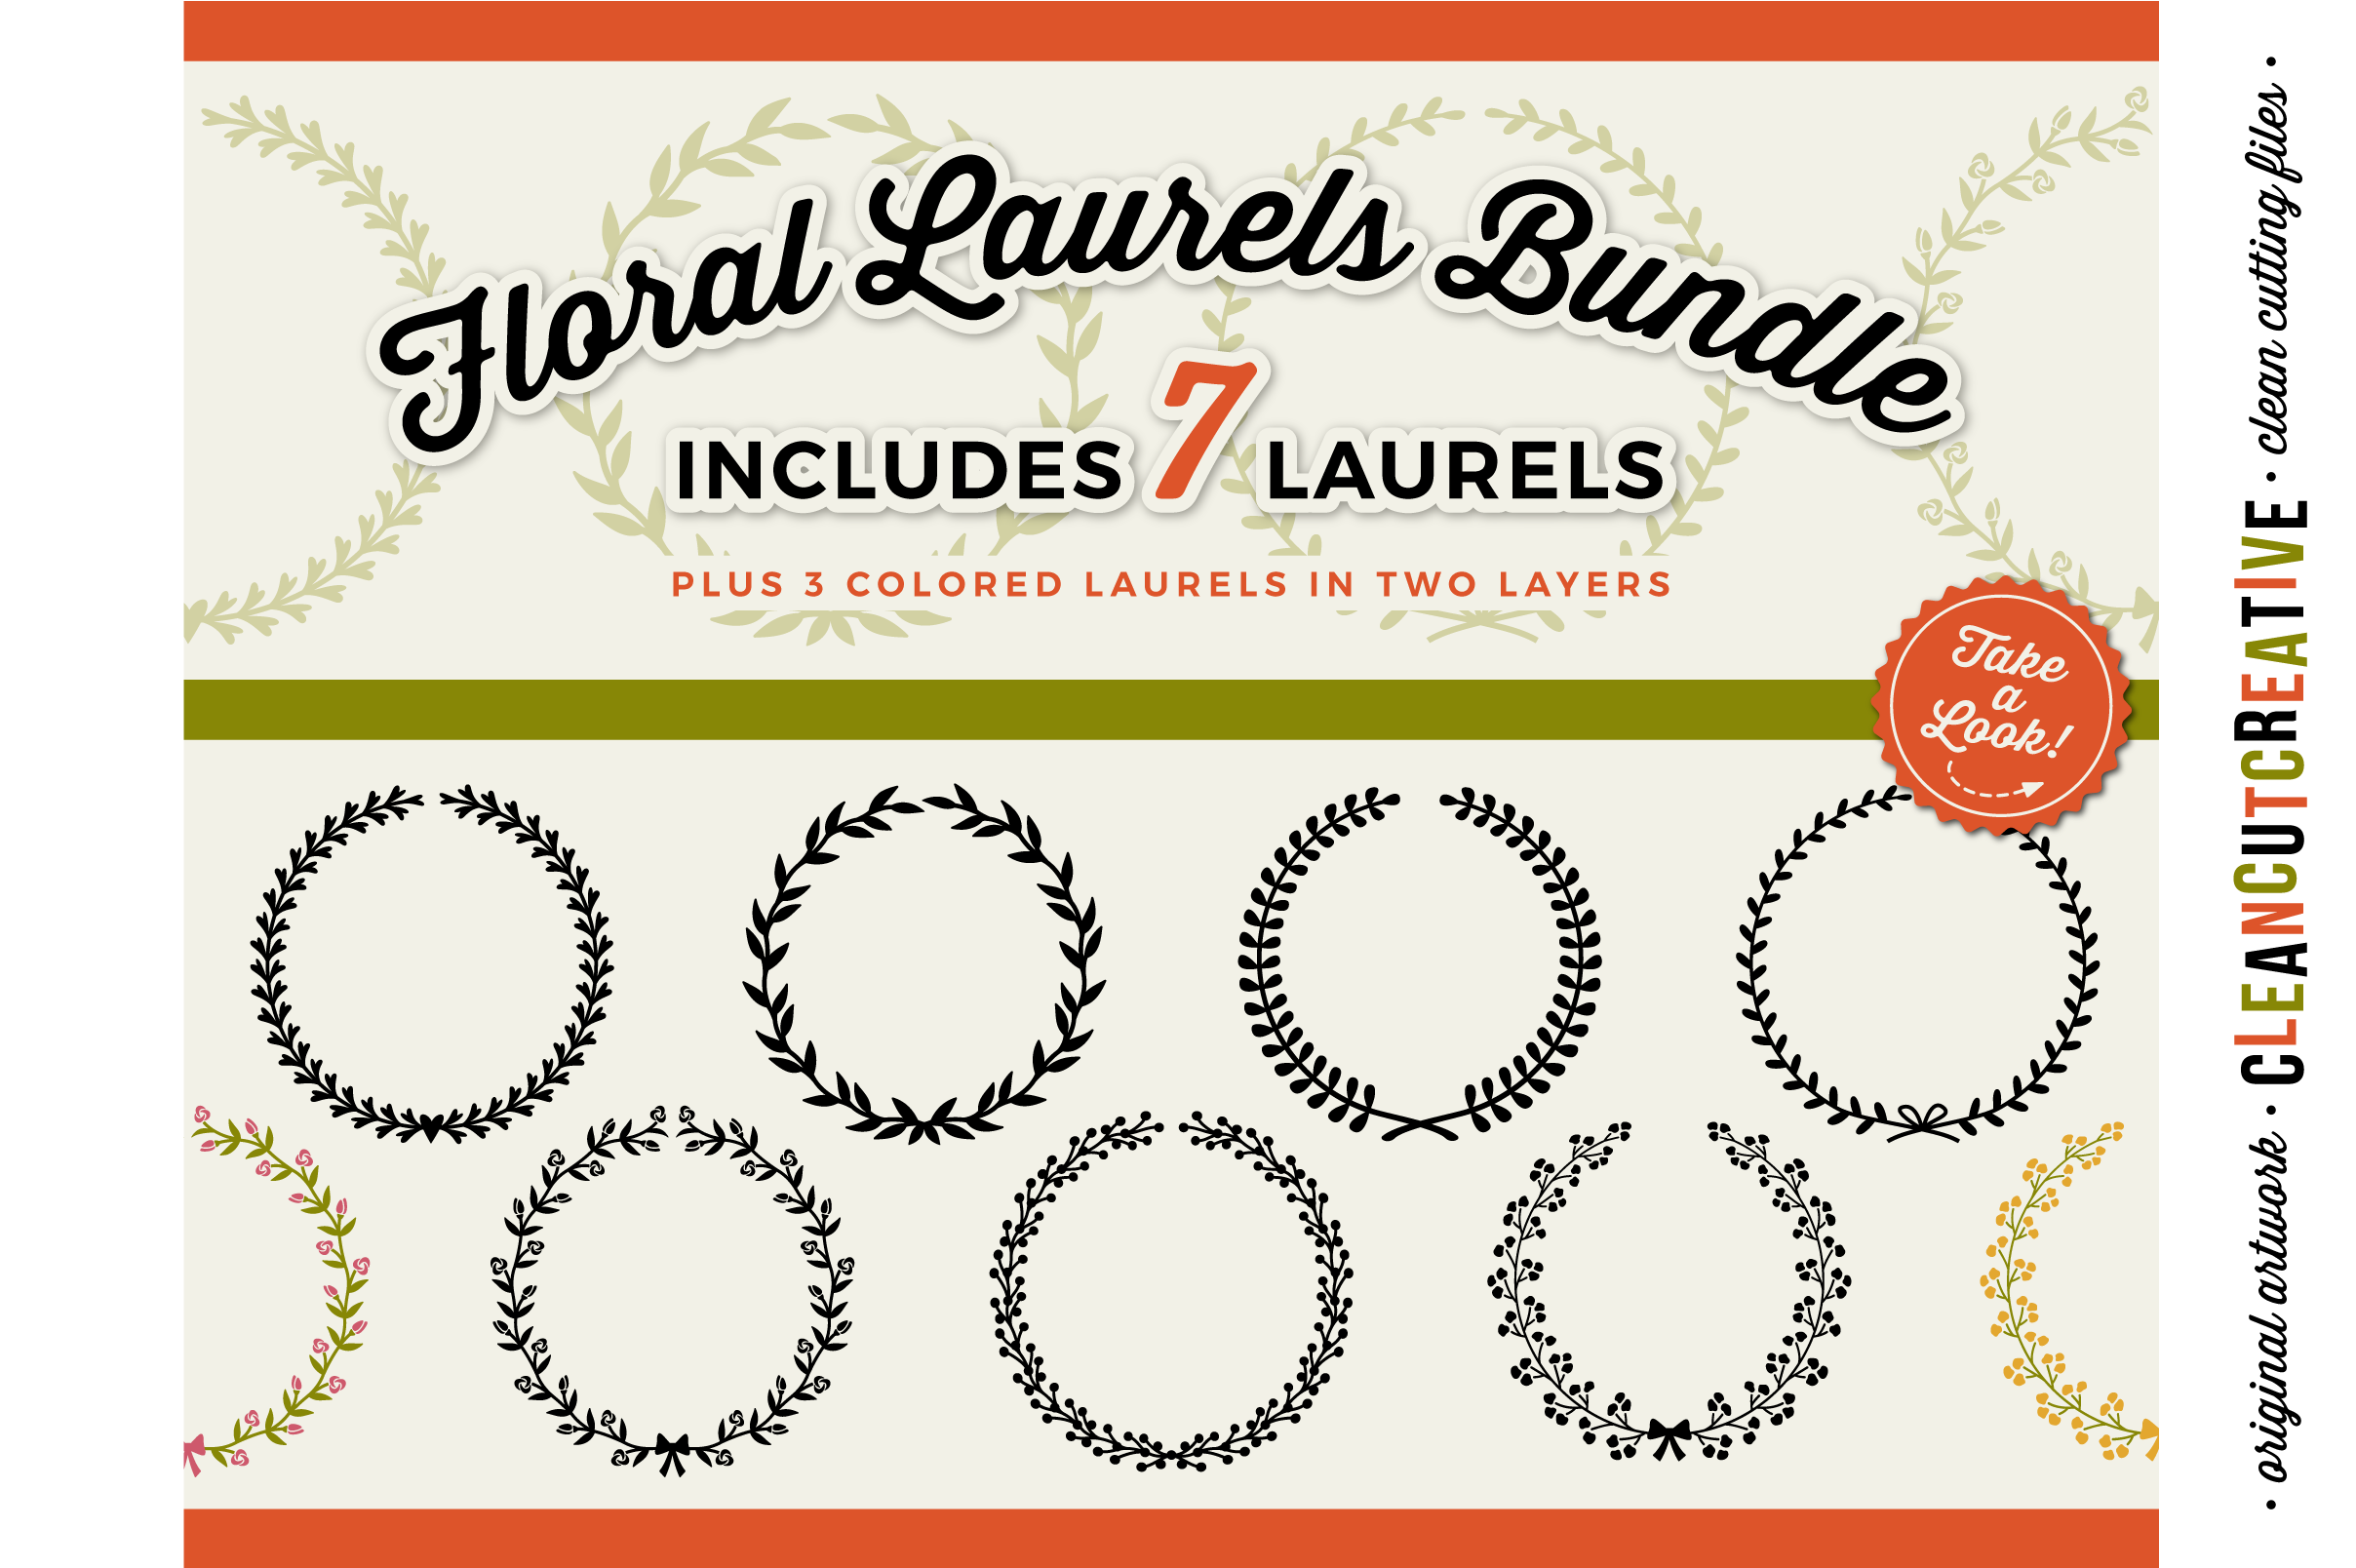 7 svg FLORAL LAURELS floral leaf circleframes - SVG DXF EPS PNG - for Cricut and Silhouette Cameo - clean cutting digital files example image 1